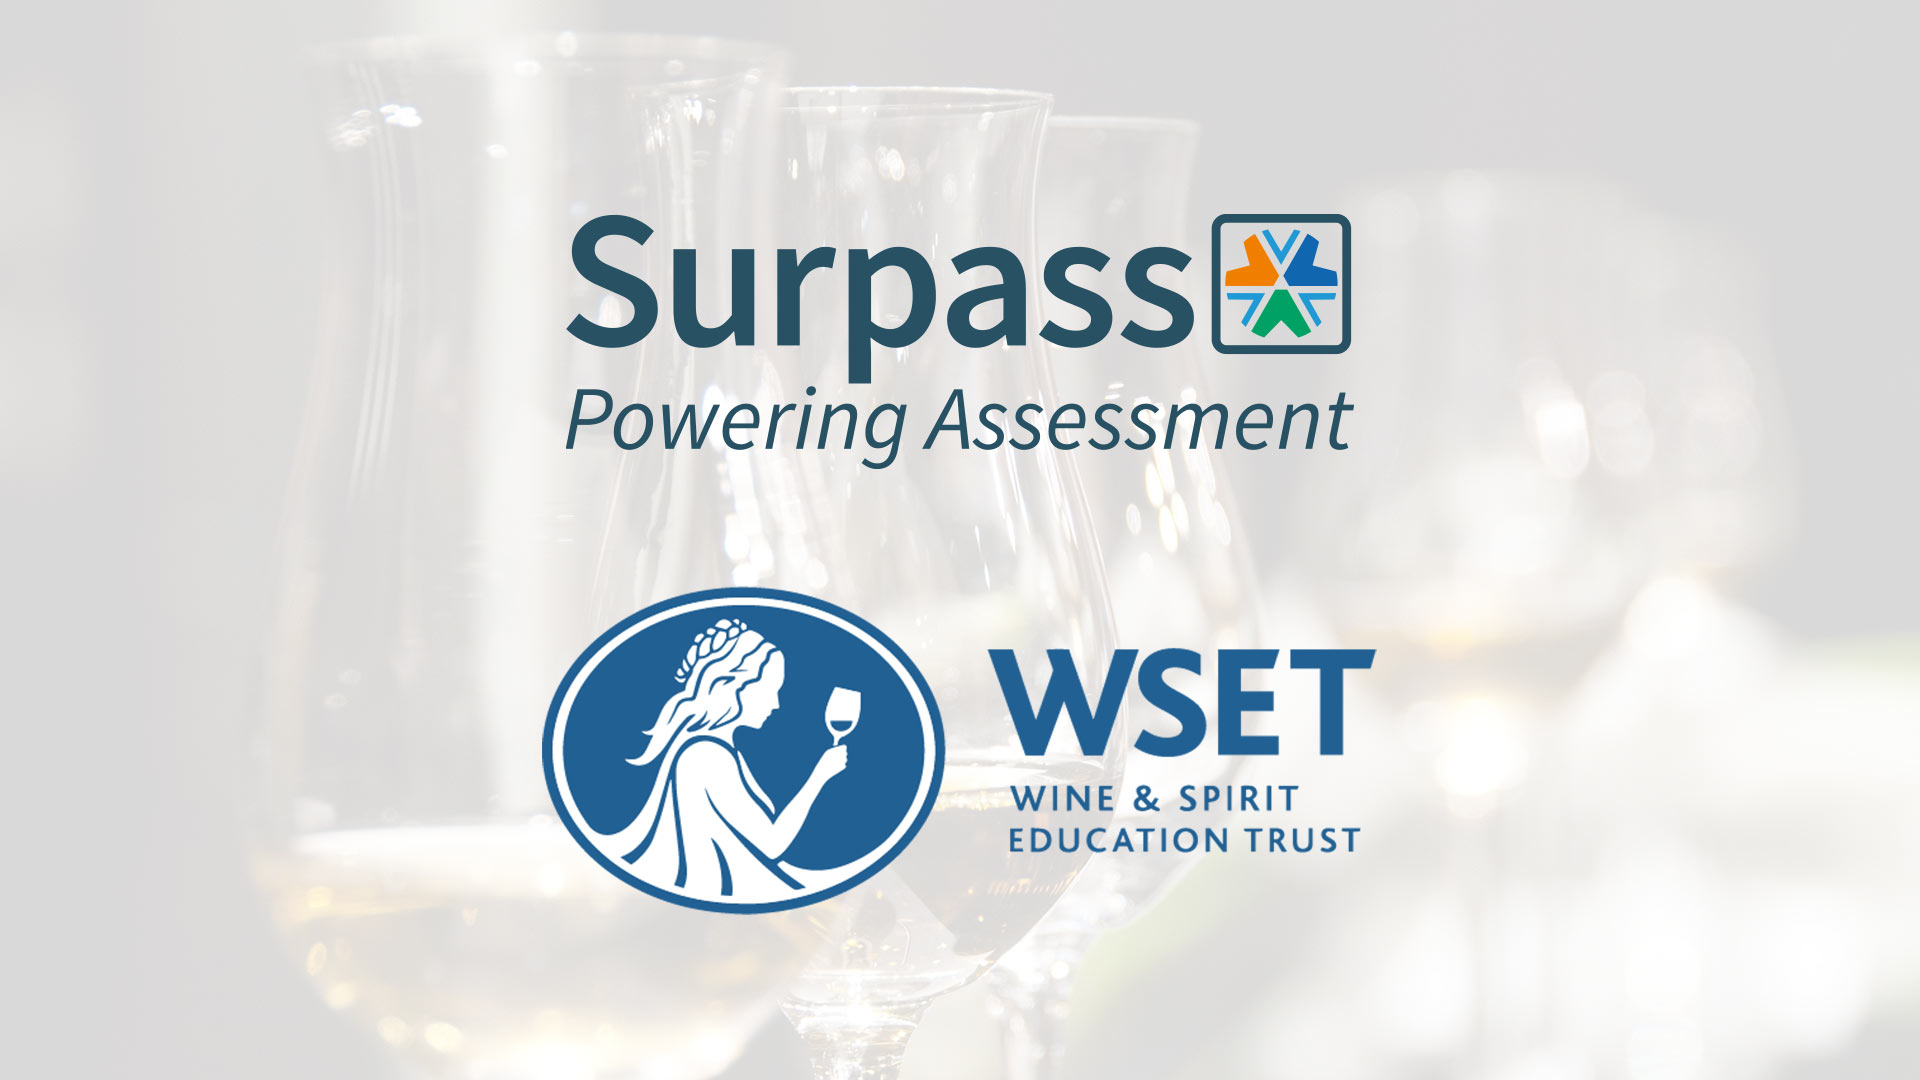 Surpass, Powering Assessment logo and Wine & Spirit Education Trust logo